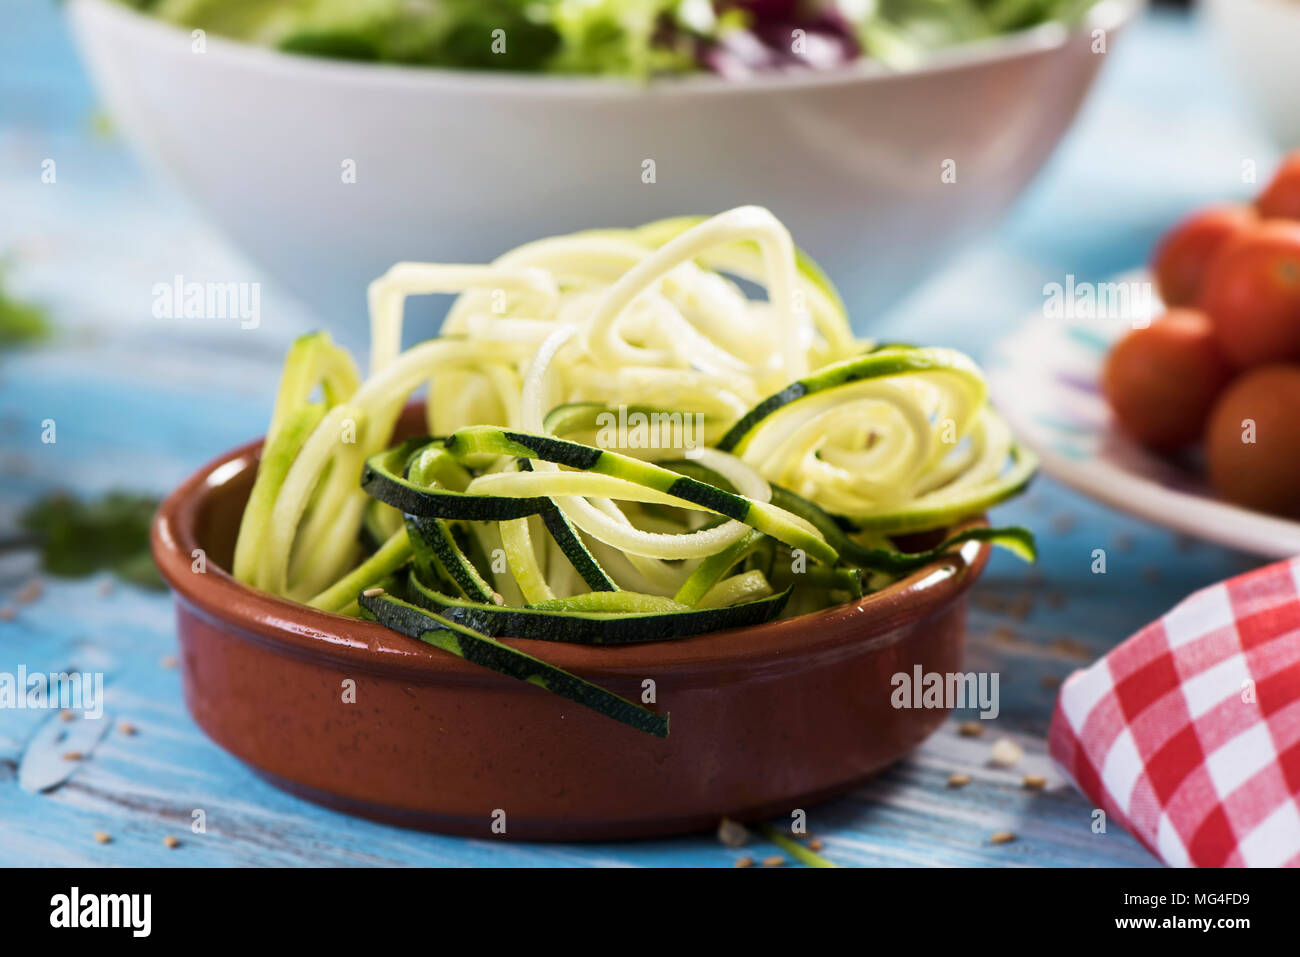 closeup of an earthenware bowl with some grated zucchini in the shape of spaghetti on a blue rustic wooden table, next to a plate with cherry tomatoes Stock Photo